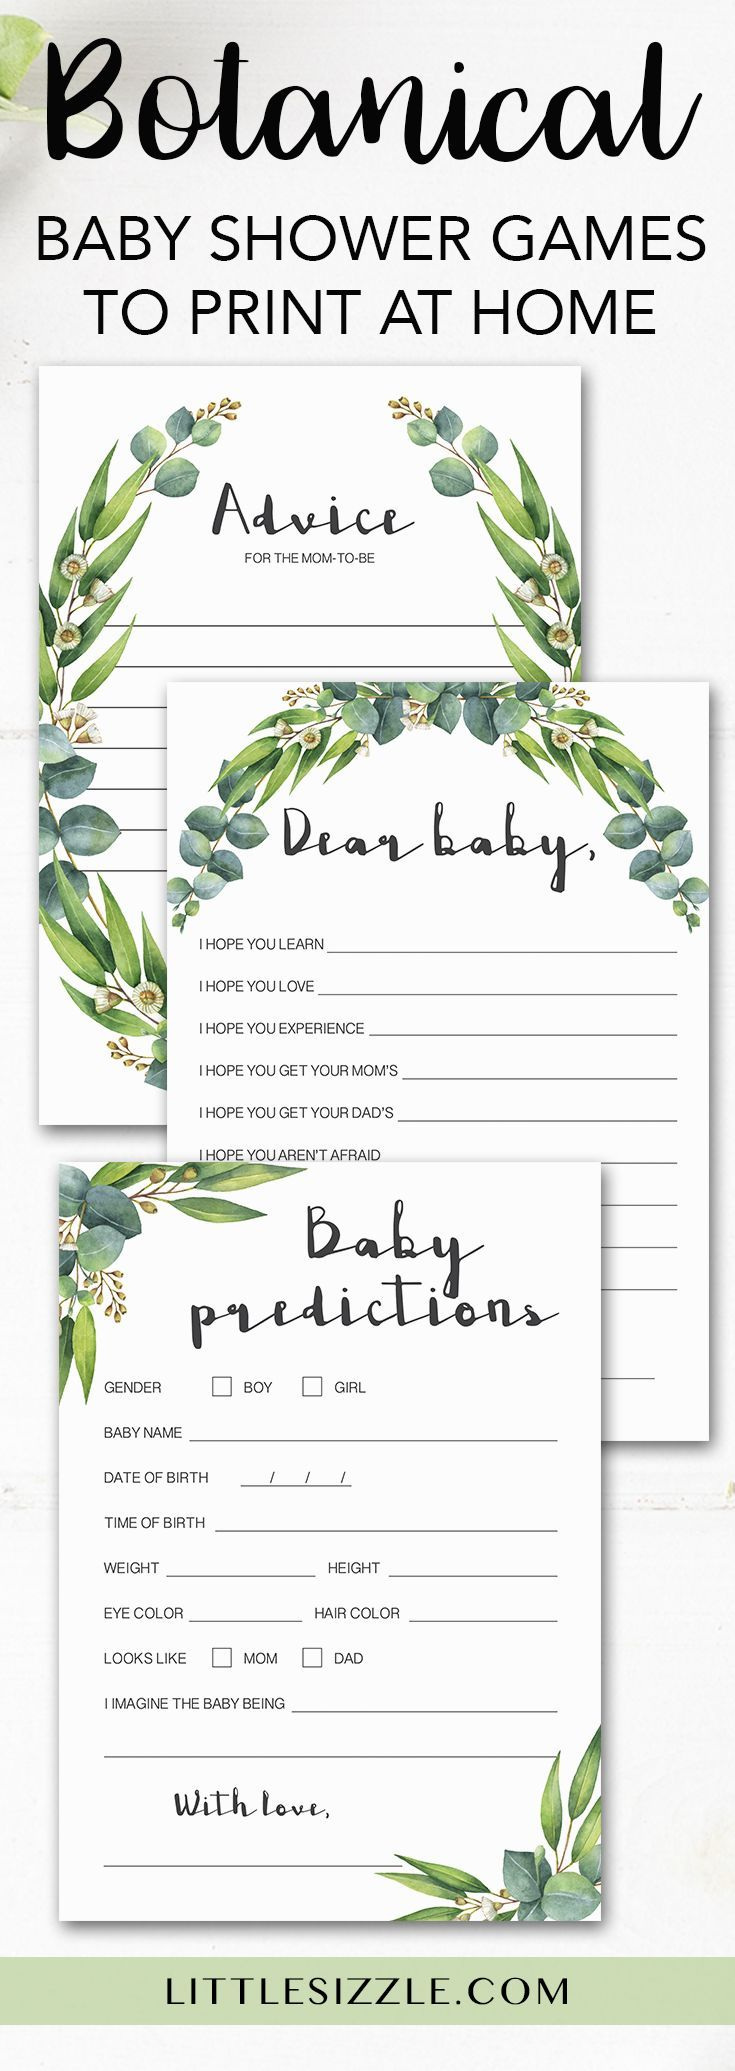 Botanical Baby Shower Games Printable